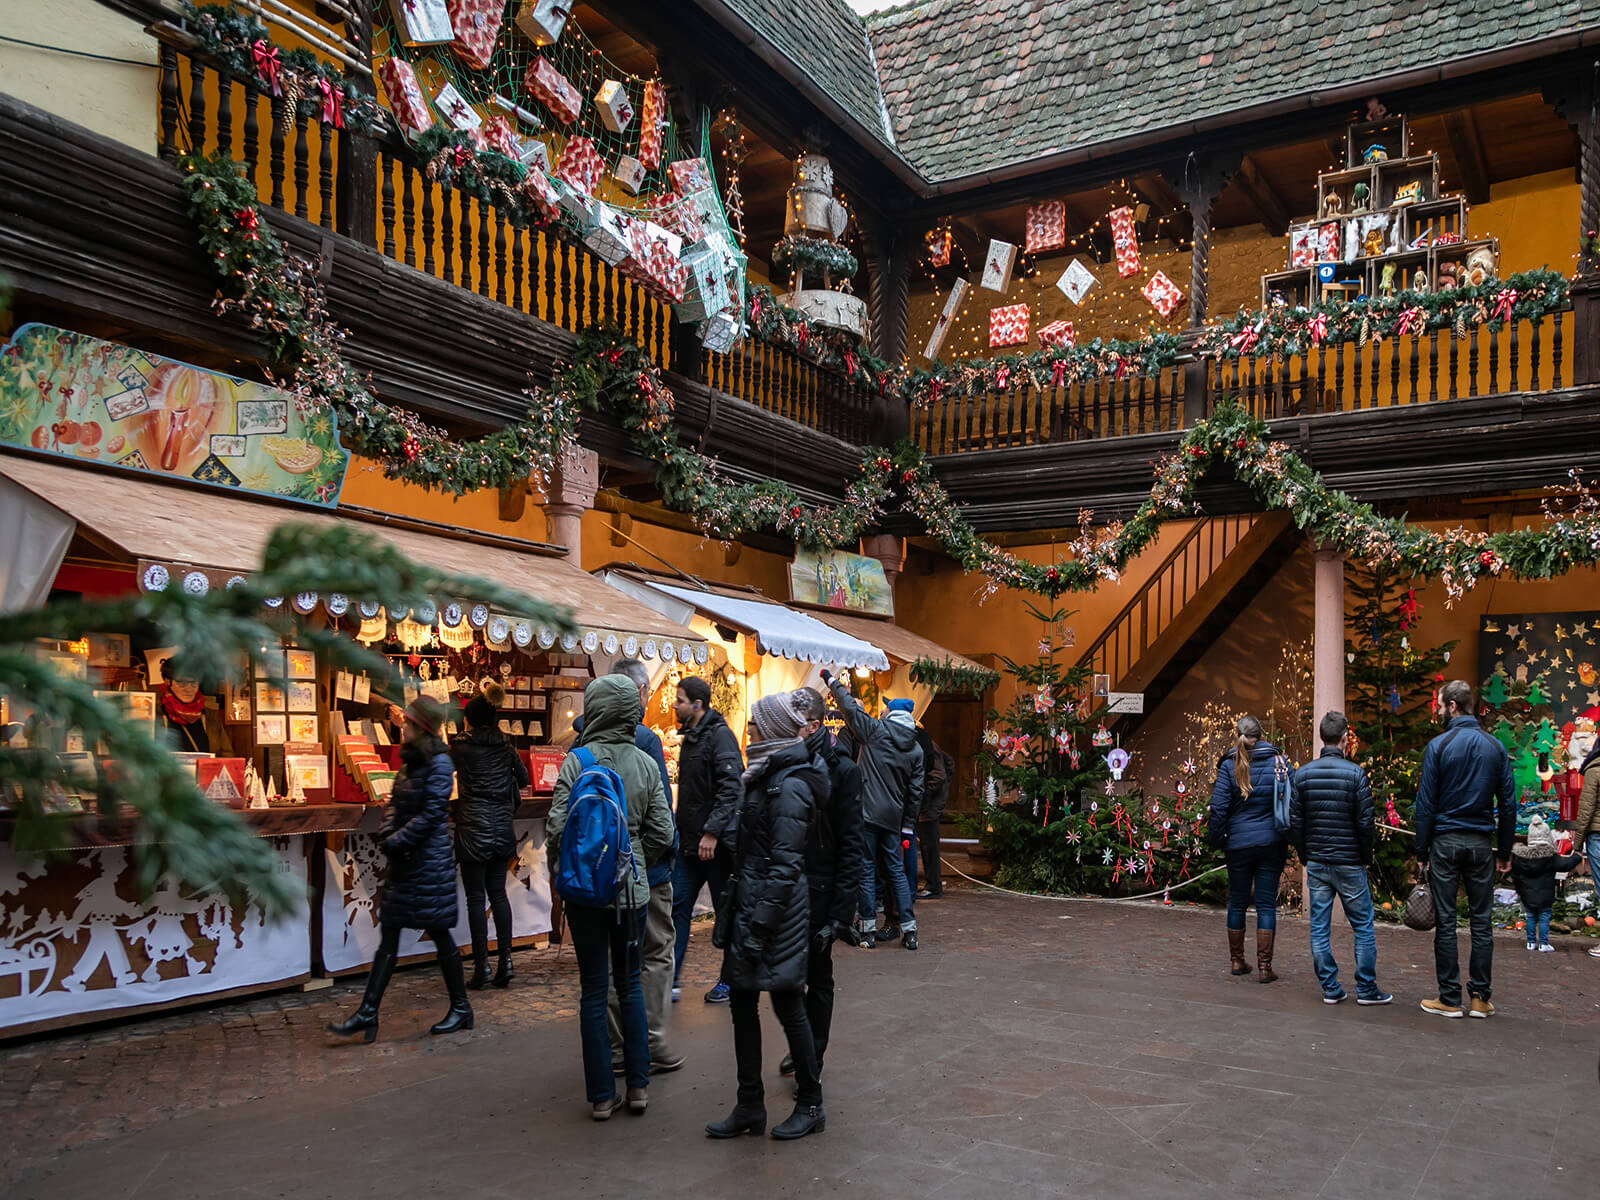 Authentic Christmas market in Kaysersberg